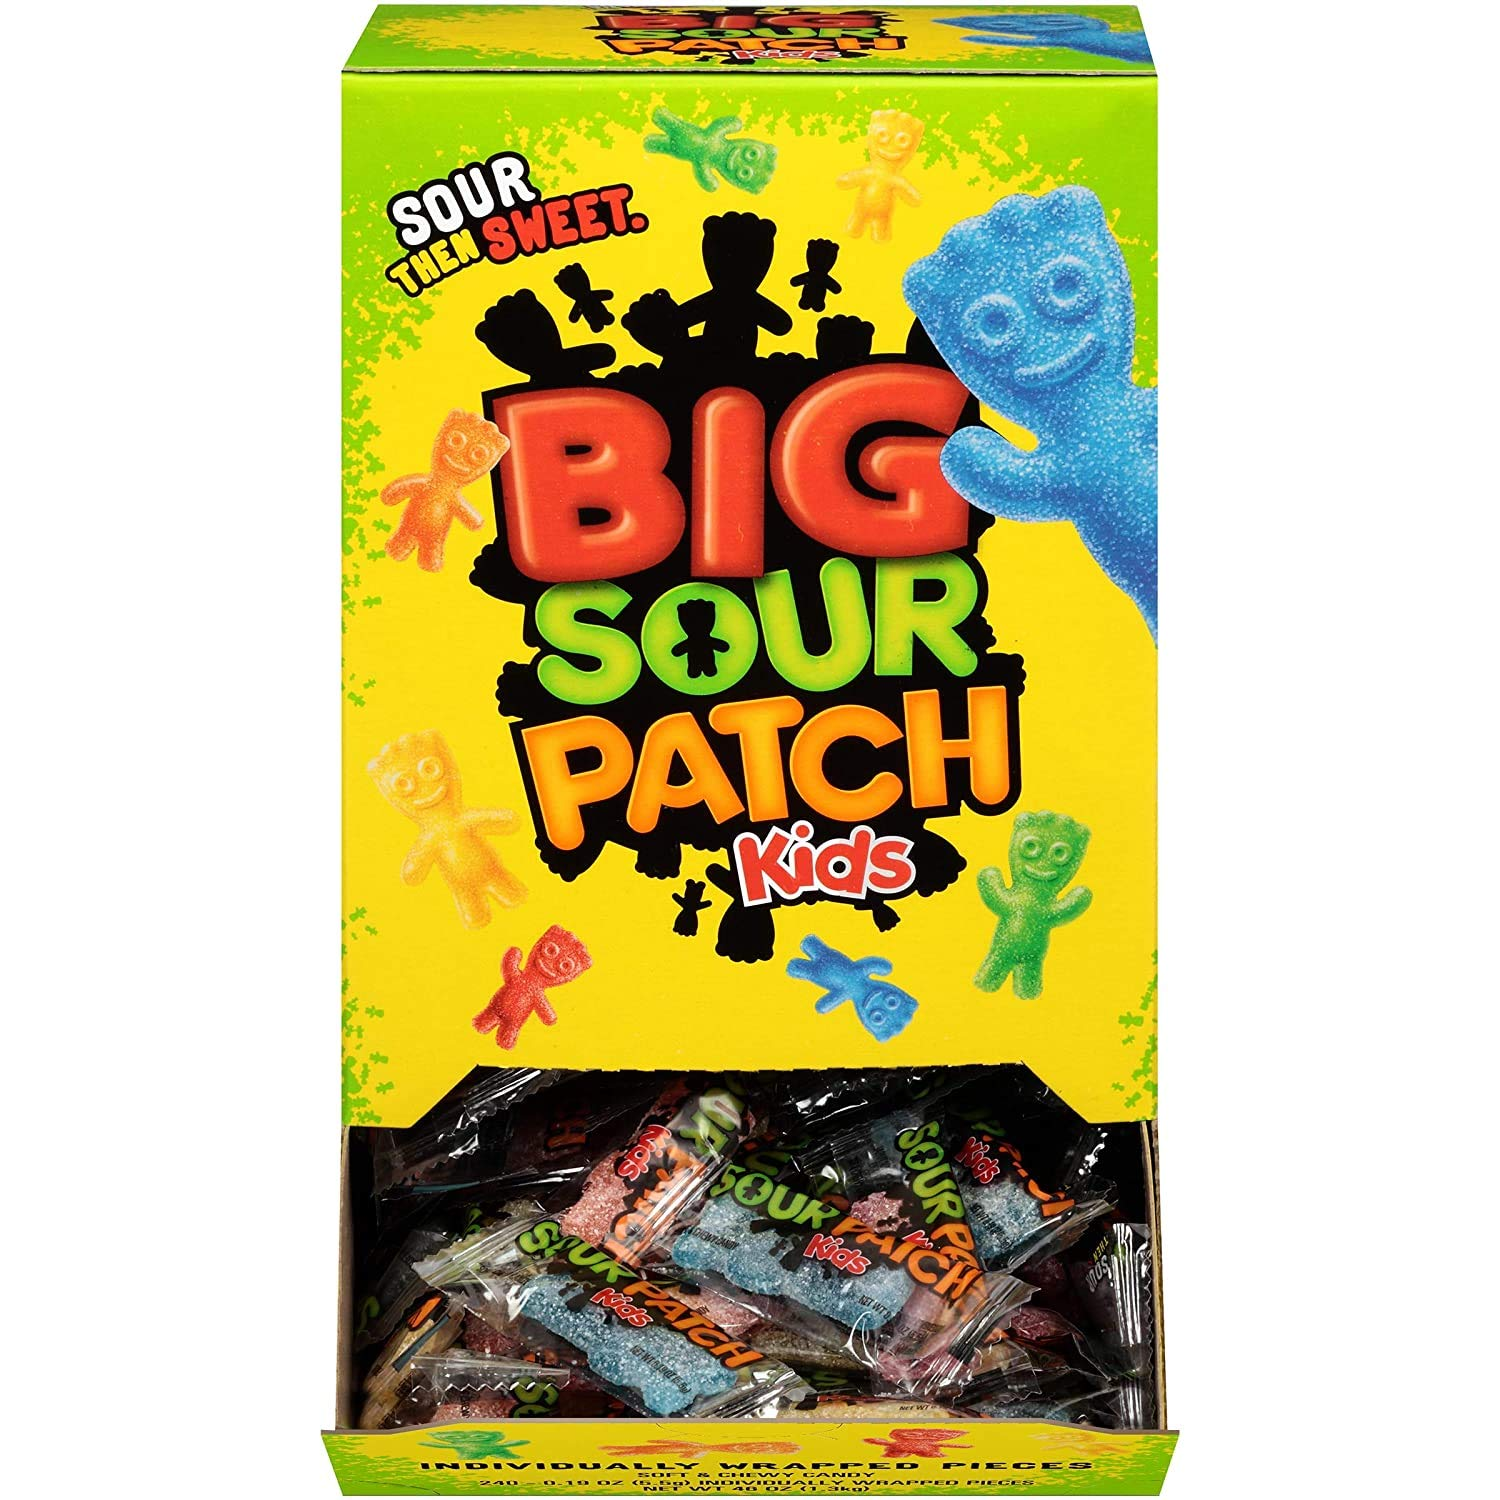 SOUR PATCH KIDS Big Individually Wrapped Soft & Chewy Candy, 240 Count : Sour Flavored Candies : Grocery & Gourmet Food